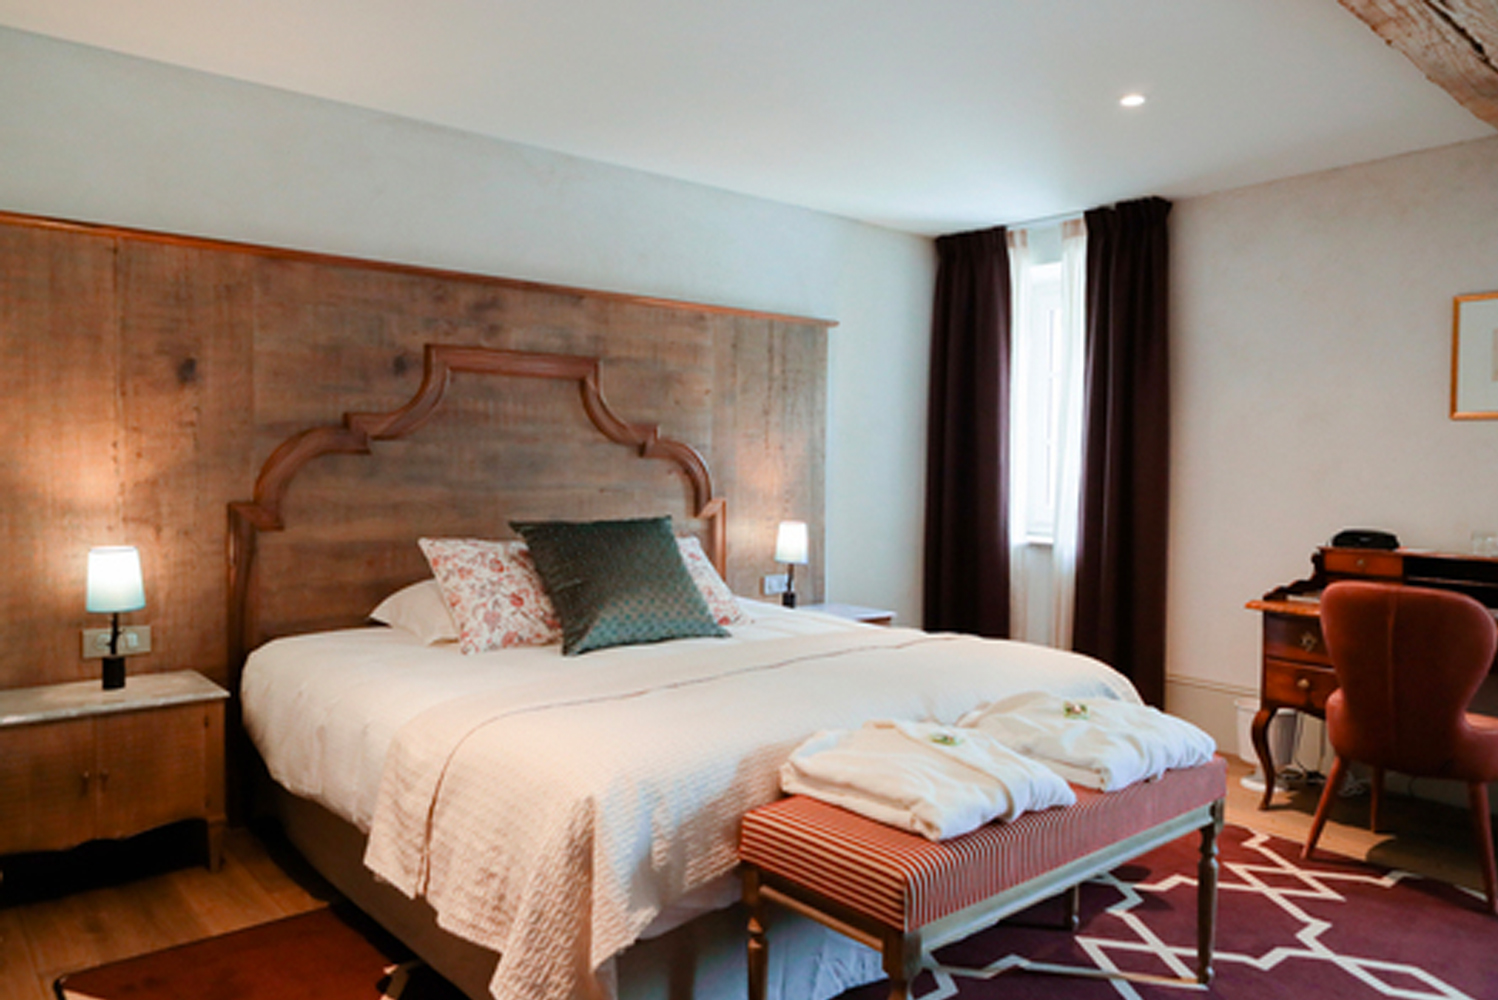 The property opened the barn that now has 10 additional rooms (with the property's total keys numbering 42), restaurant and the construction of the orangery (the reception area).